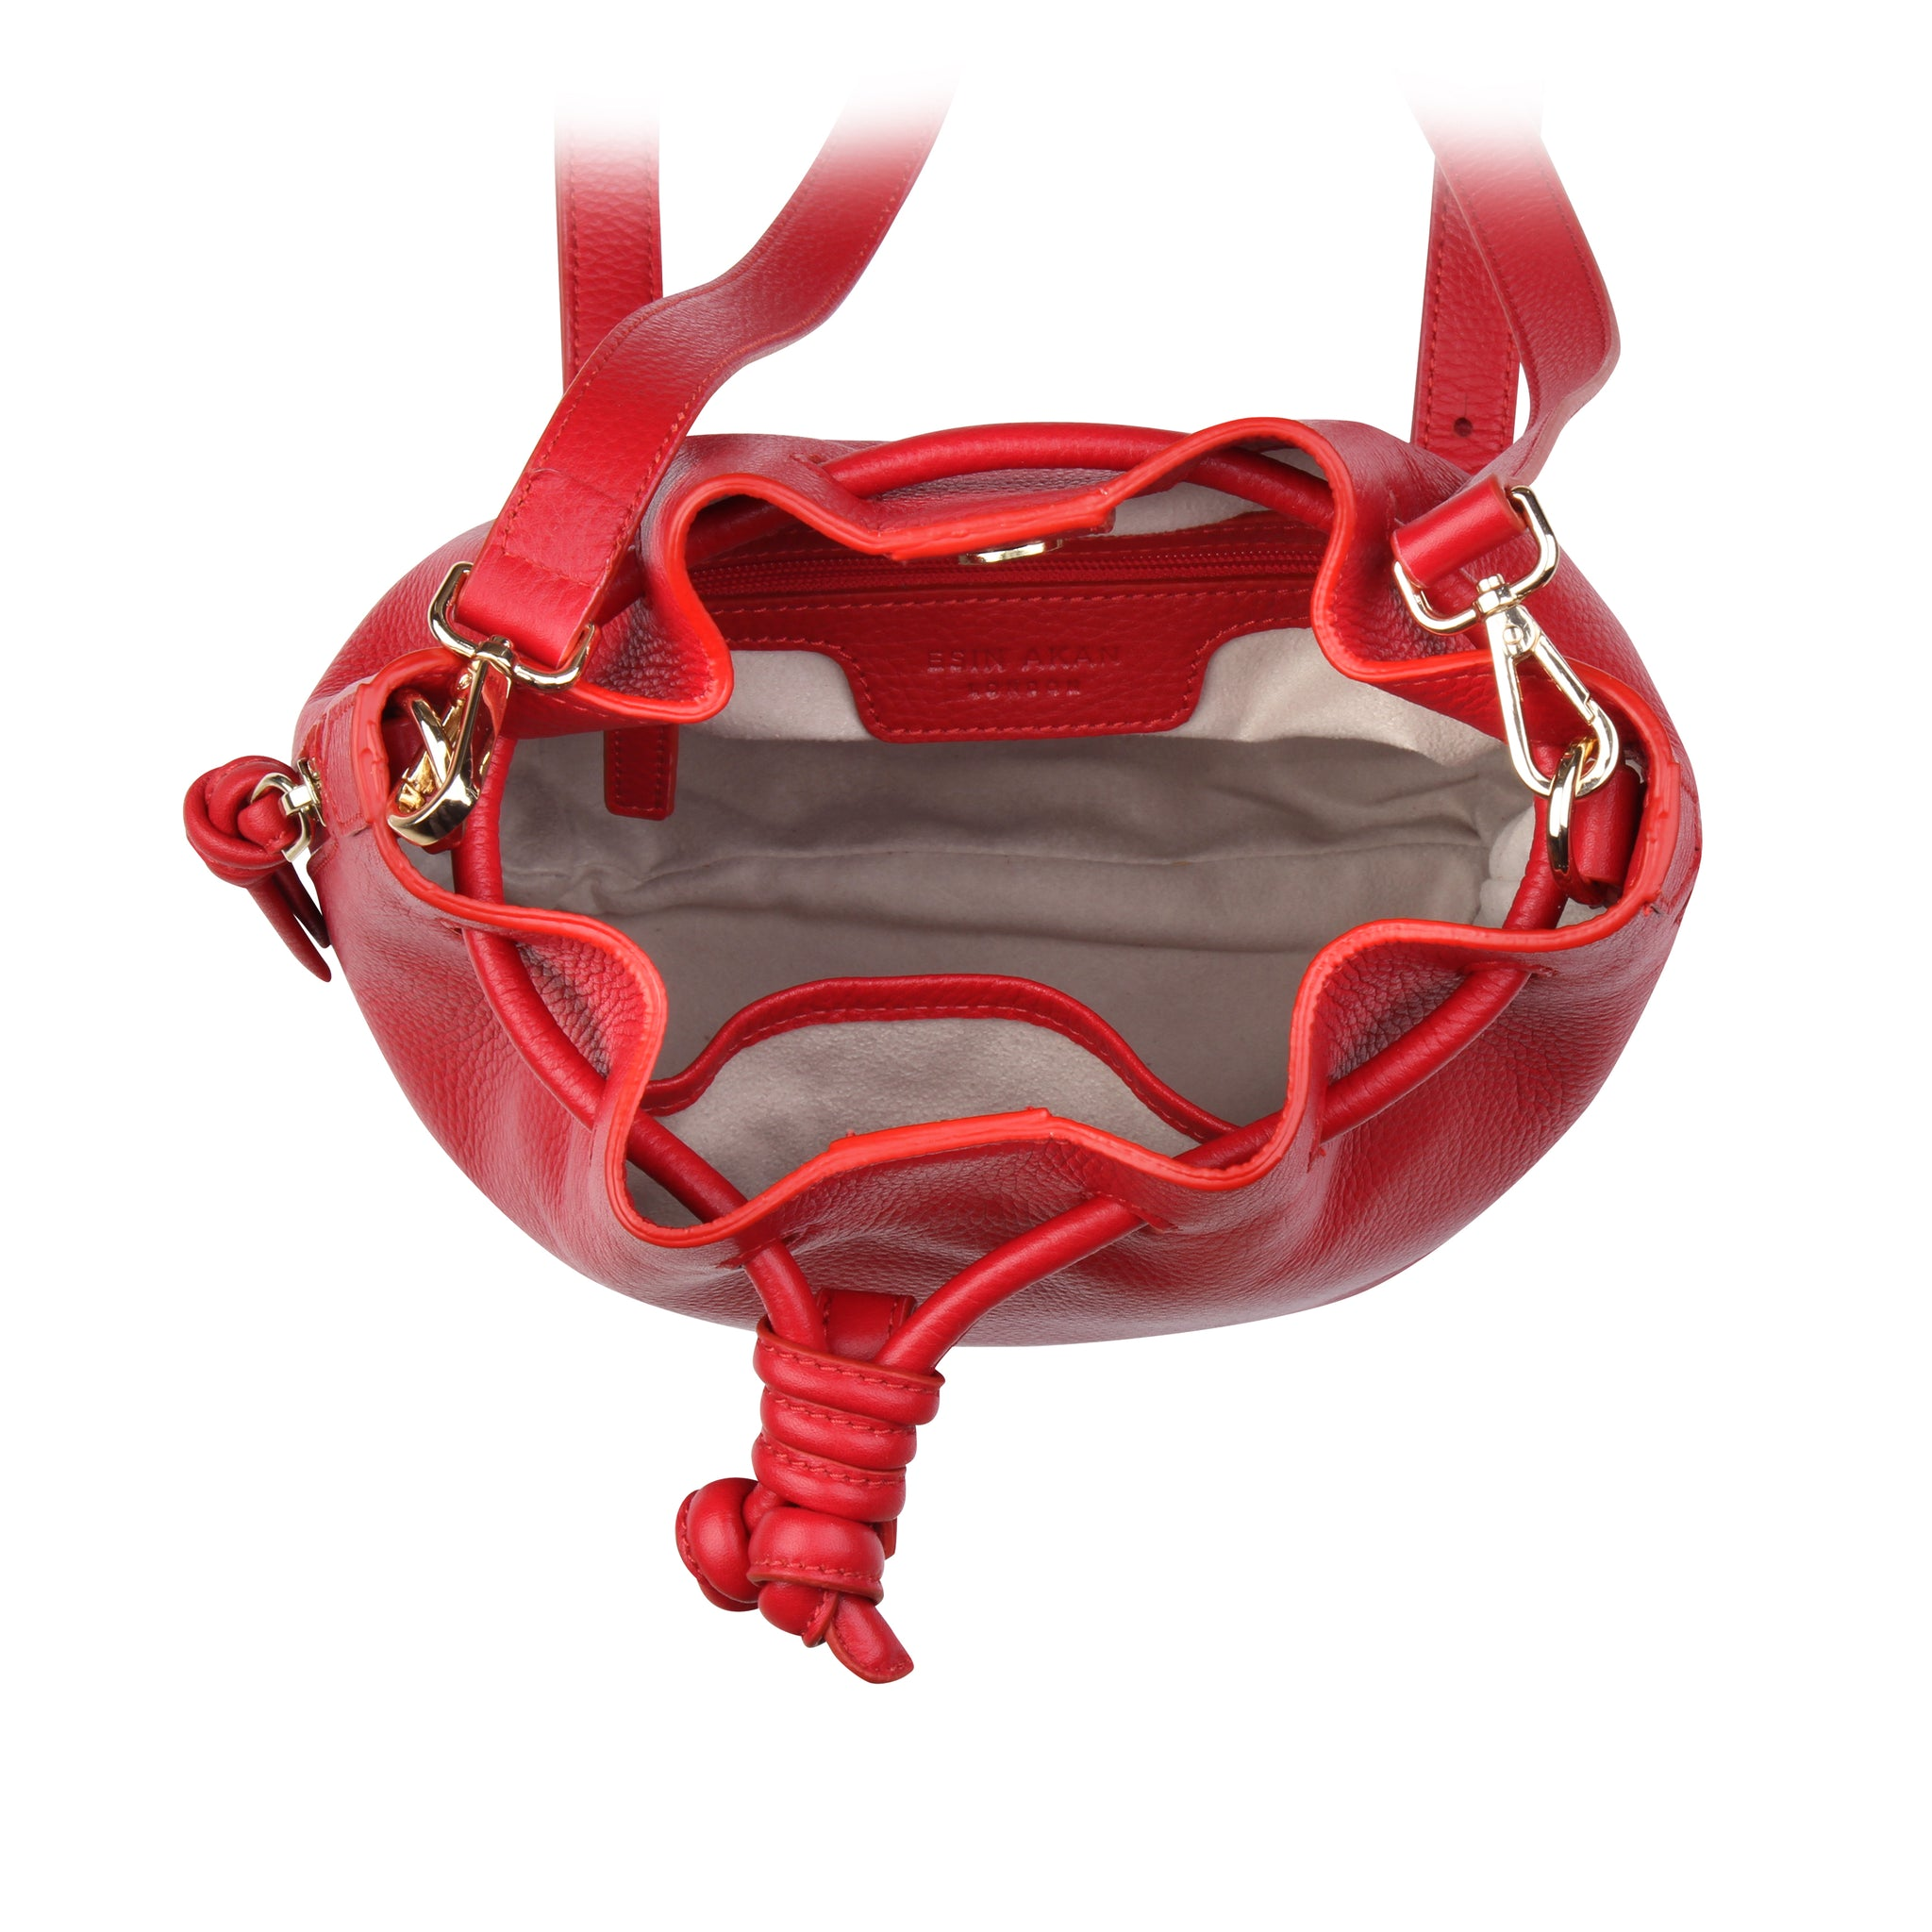 A convertible medium leather bucket crossbody bag in red, interior image.